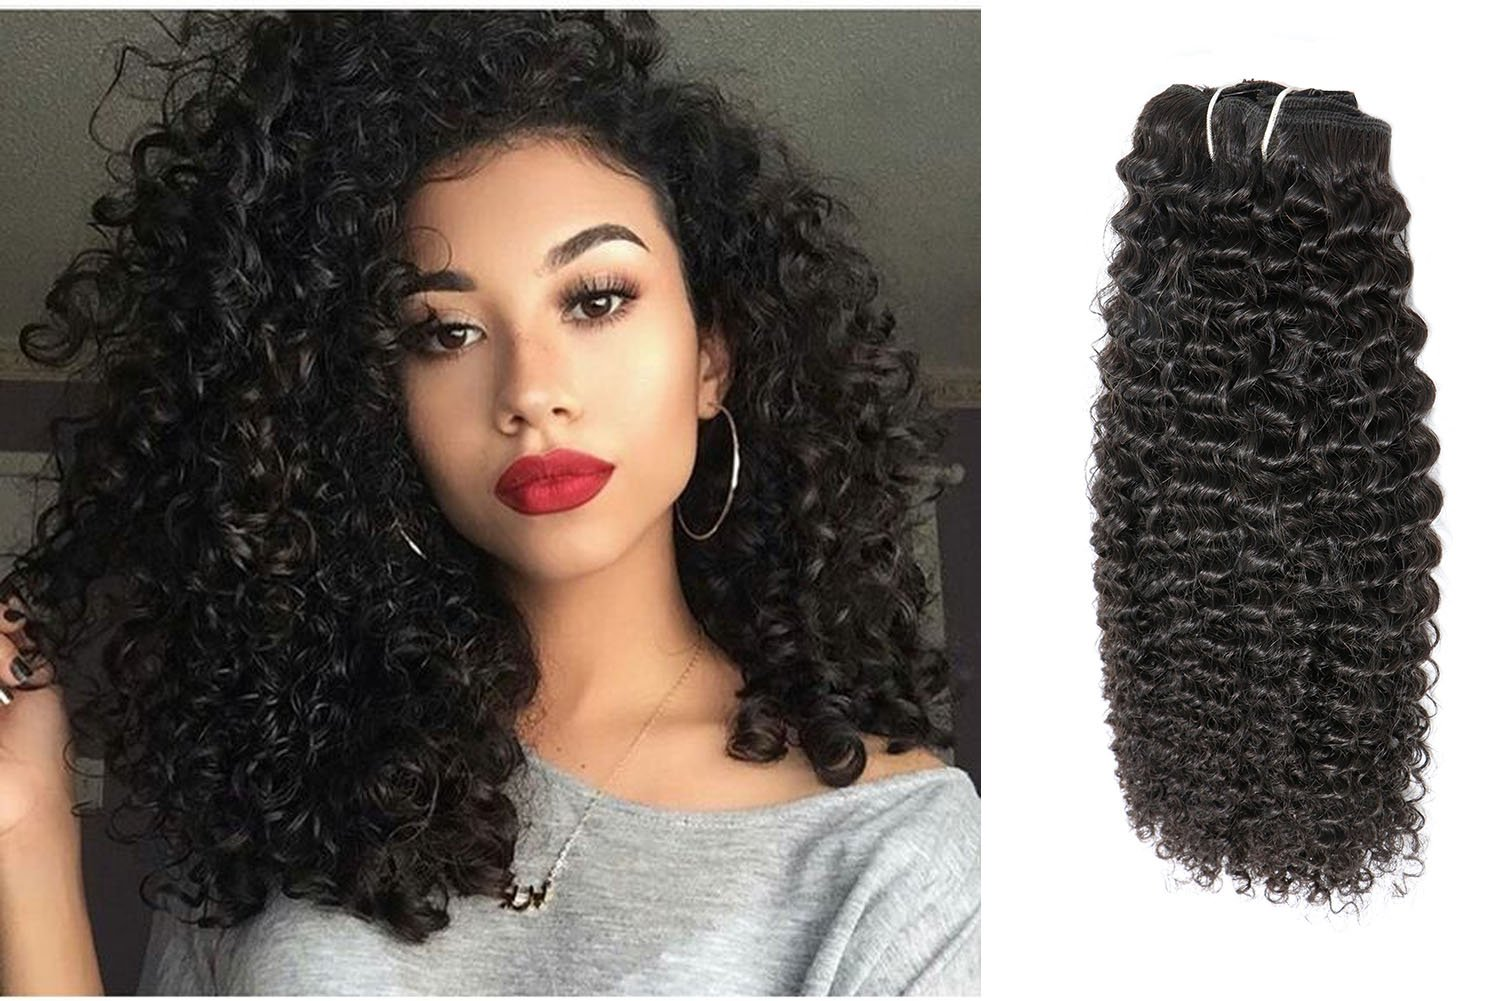 Ubetta 7 Pieces 120g Afro Curly Hair Clip Ins For African Hair Extensions American Women Natural Black Hair